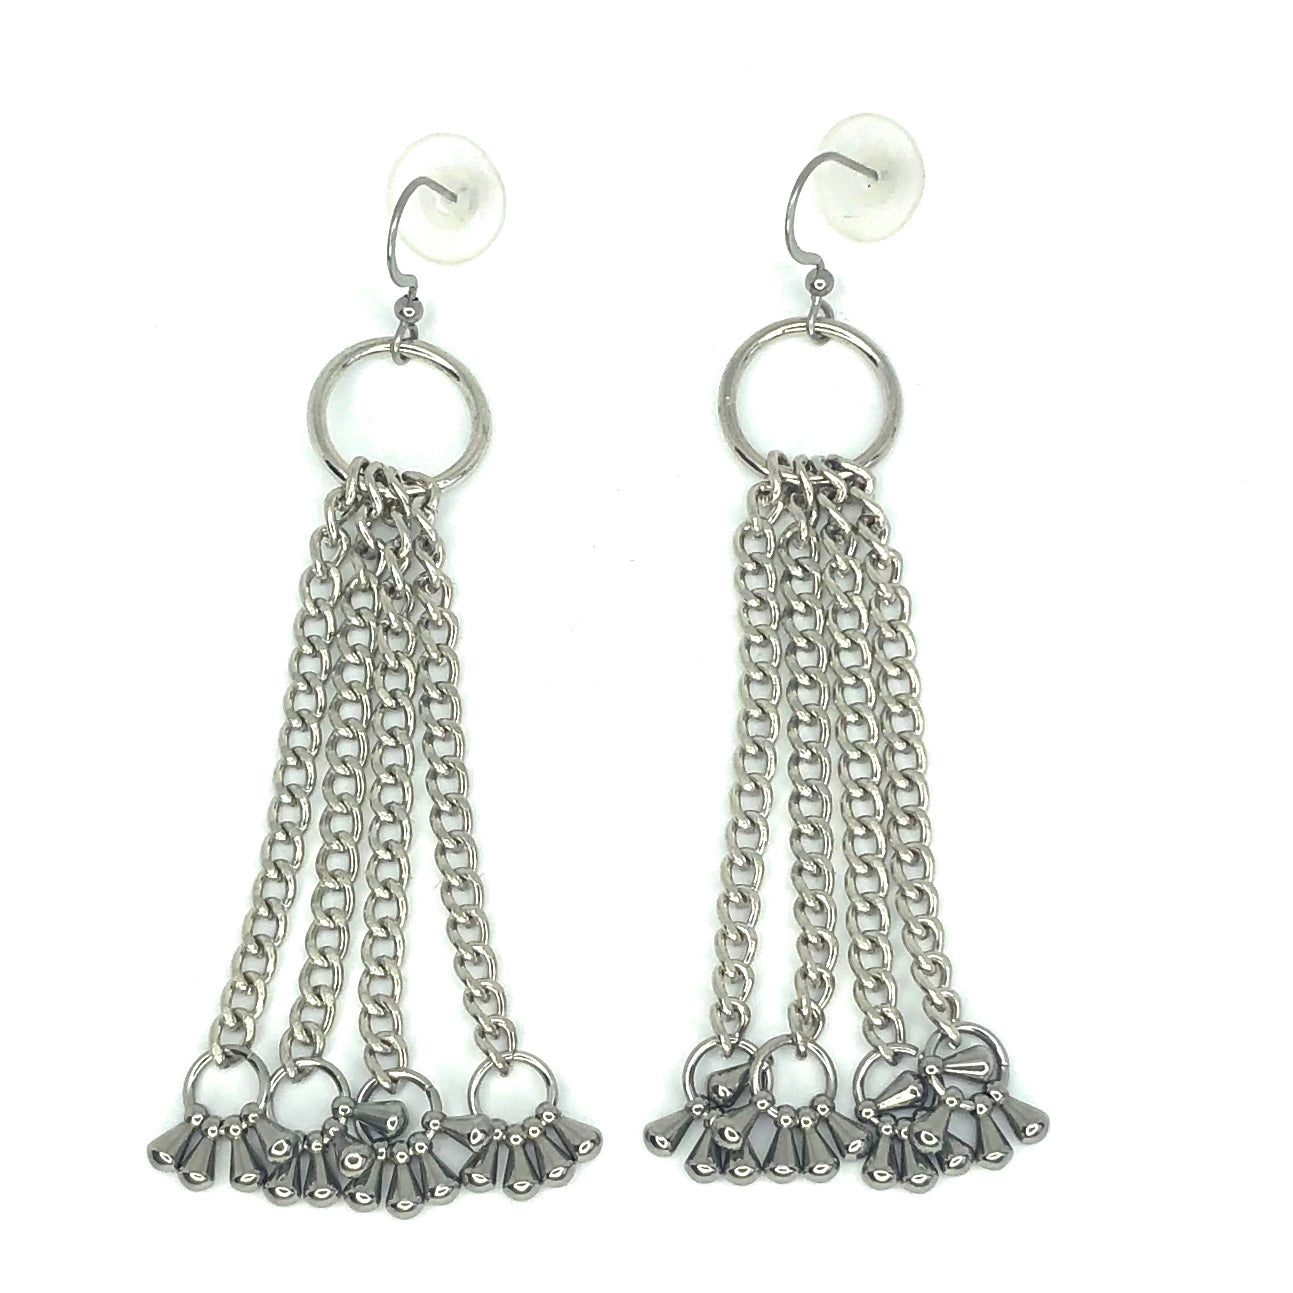 CHAIN EARRINGS WITH CLUSTER OF TEAR DROPS BY NYET JEWELRY.